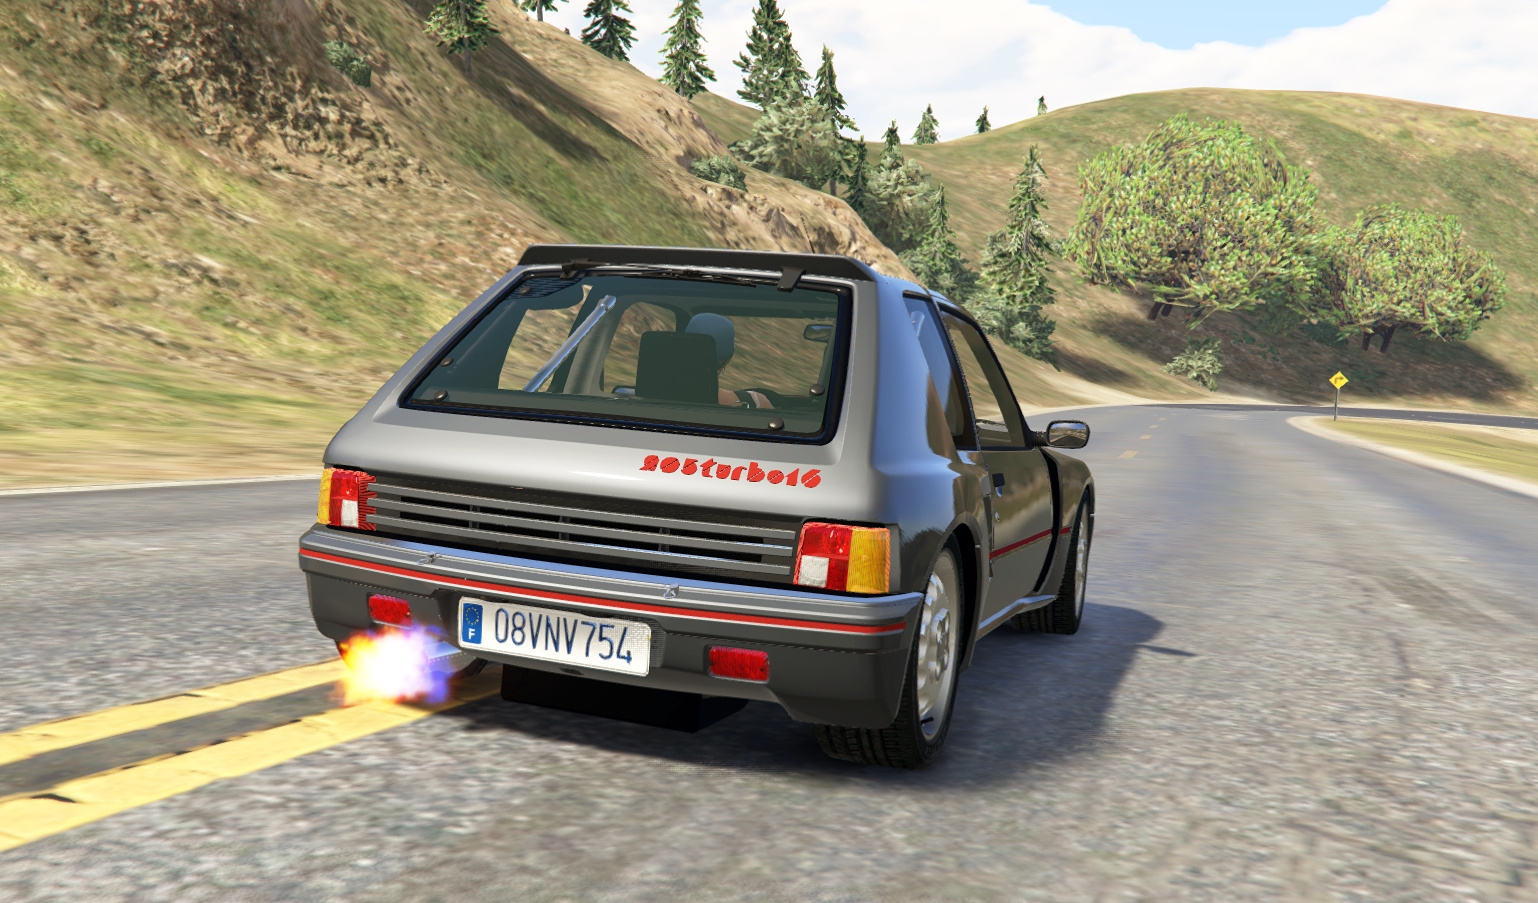 peugeot 205 turbo 16 rally 2in1 add on tuning livery gta5. Black Bedroom Furniture Sets. Home Design Ideas